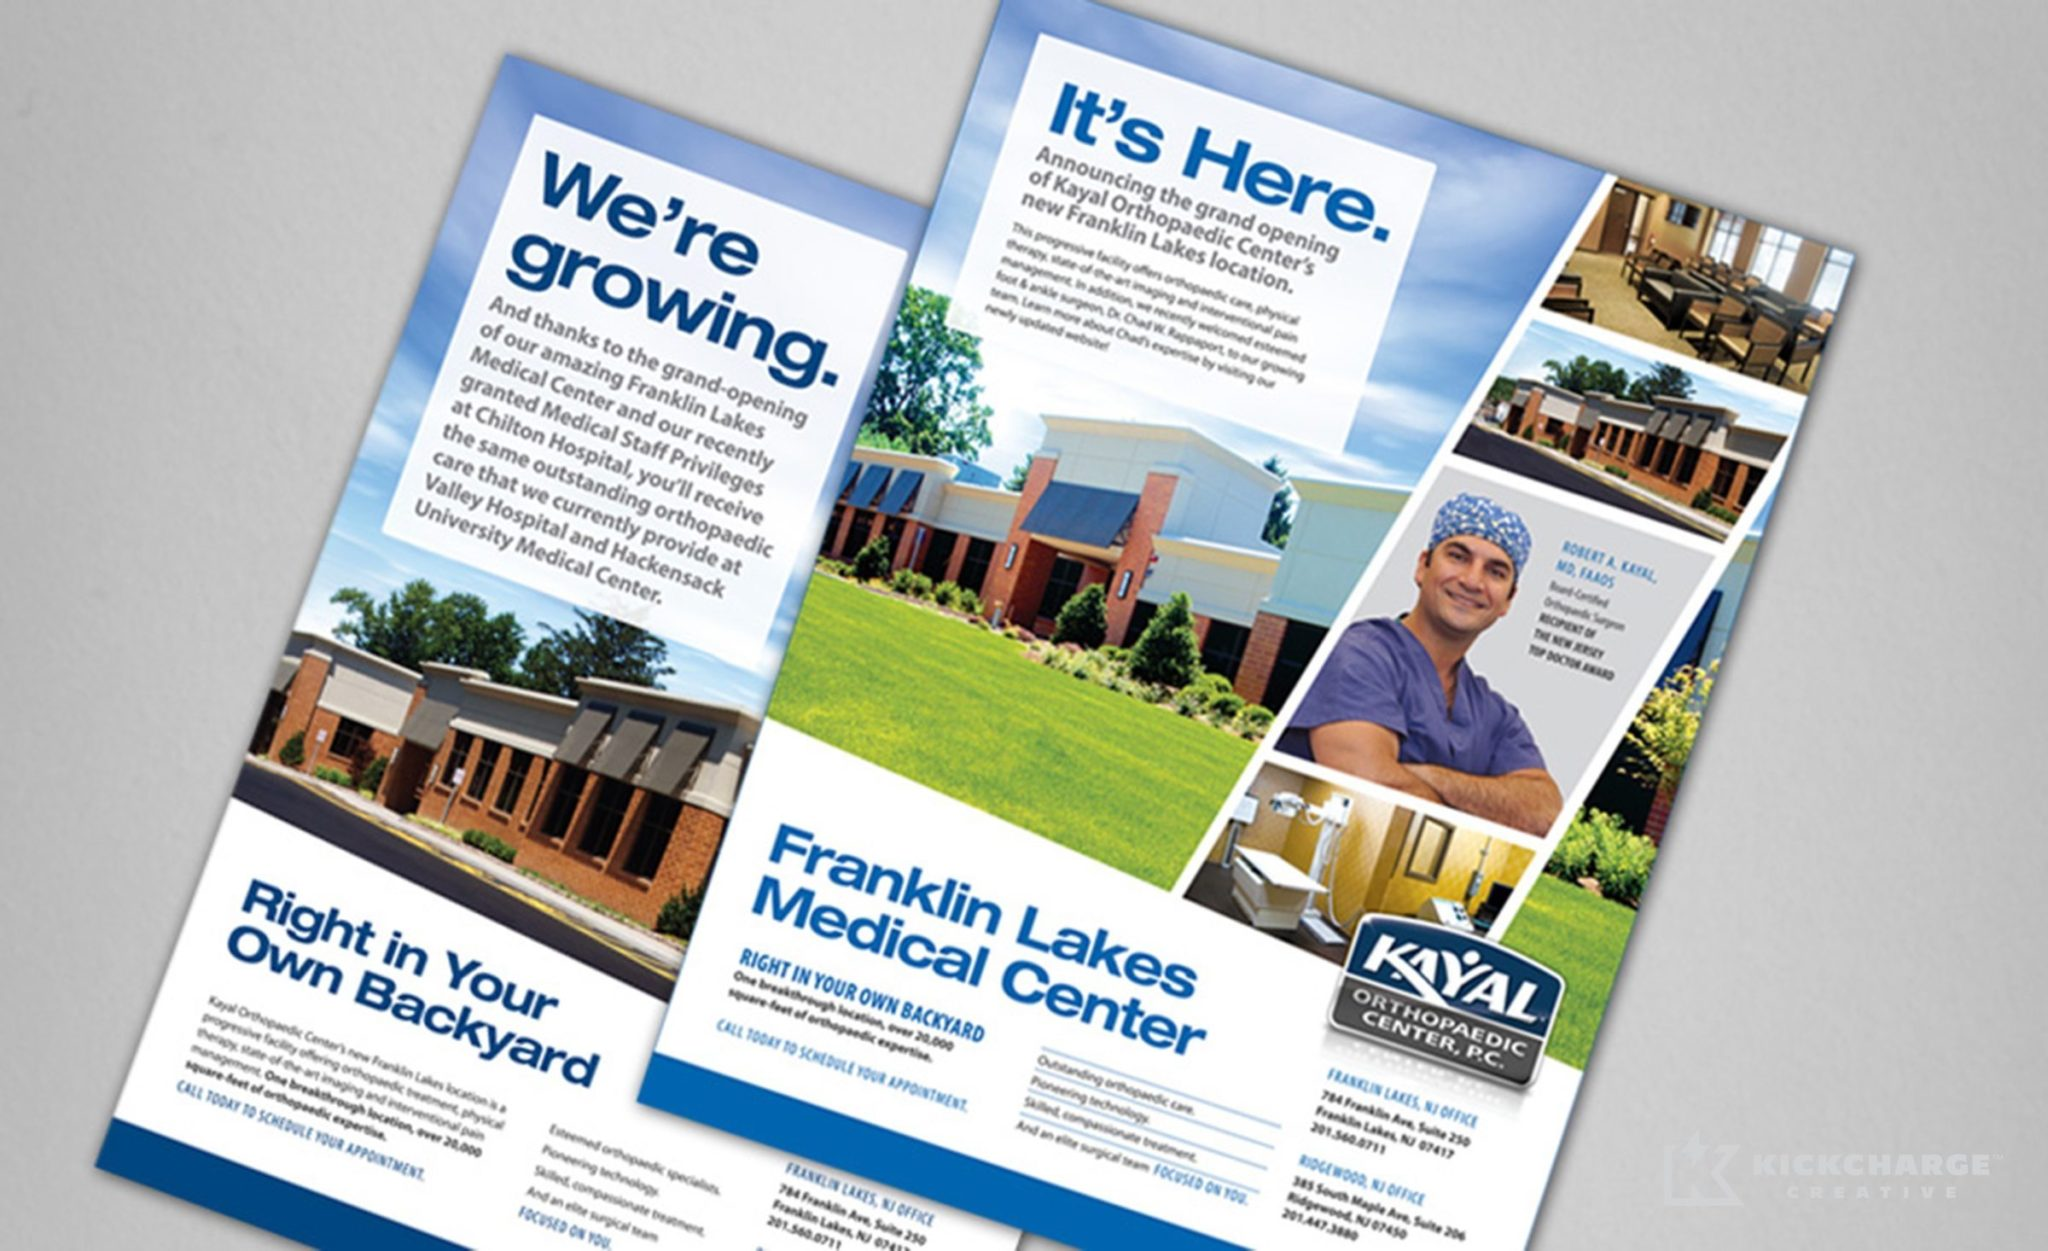 Print design for Kayal Orthopaedic Center.